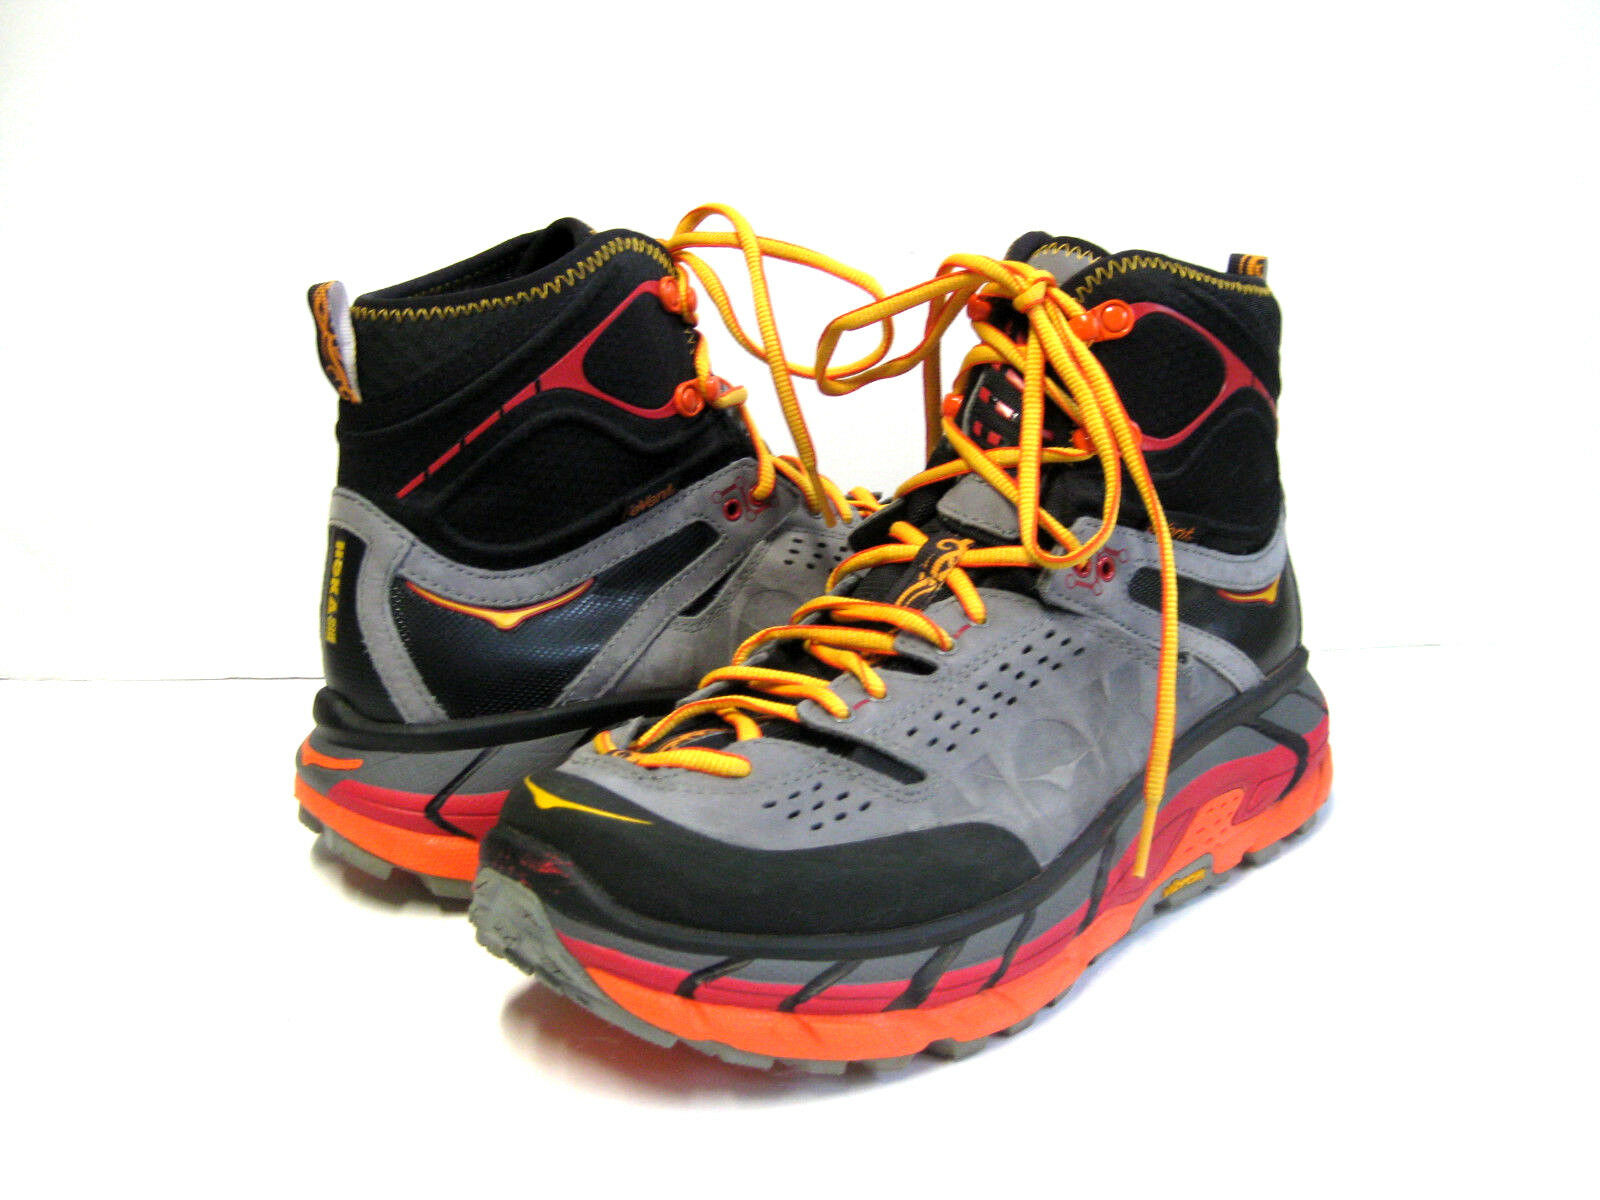 HOKA ONE ONE TOR ULTRA HI WP WOMEN HIKING BOOT BLACK/FLAME US 11 //